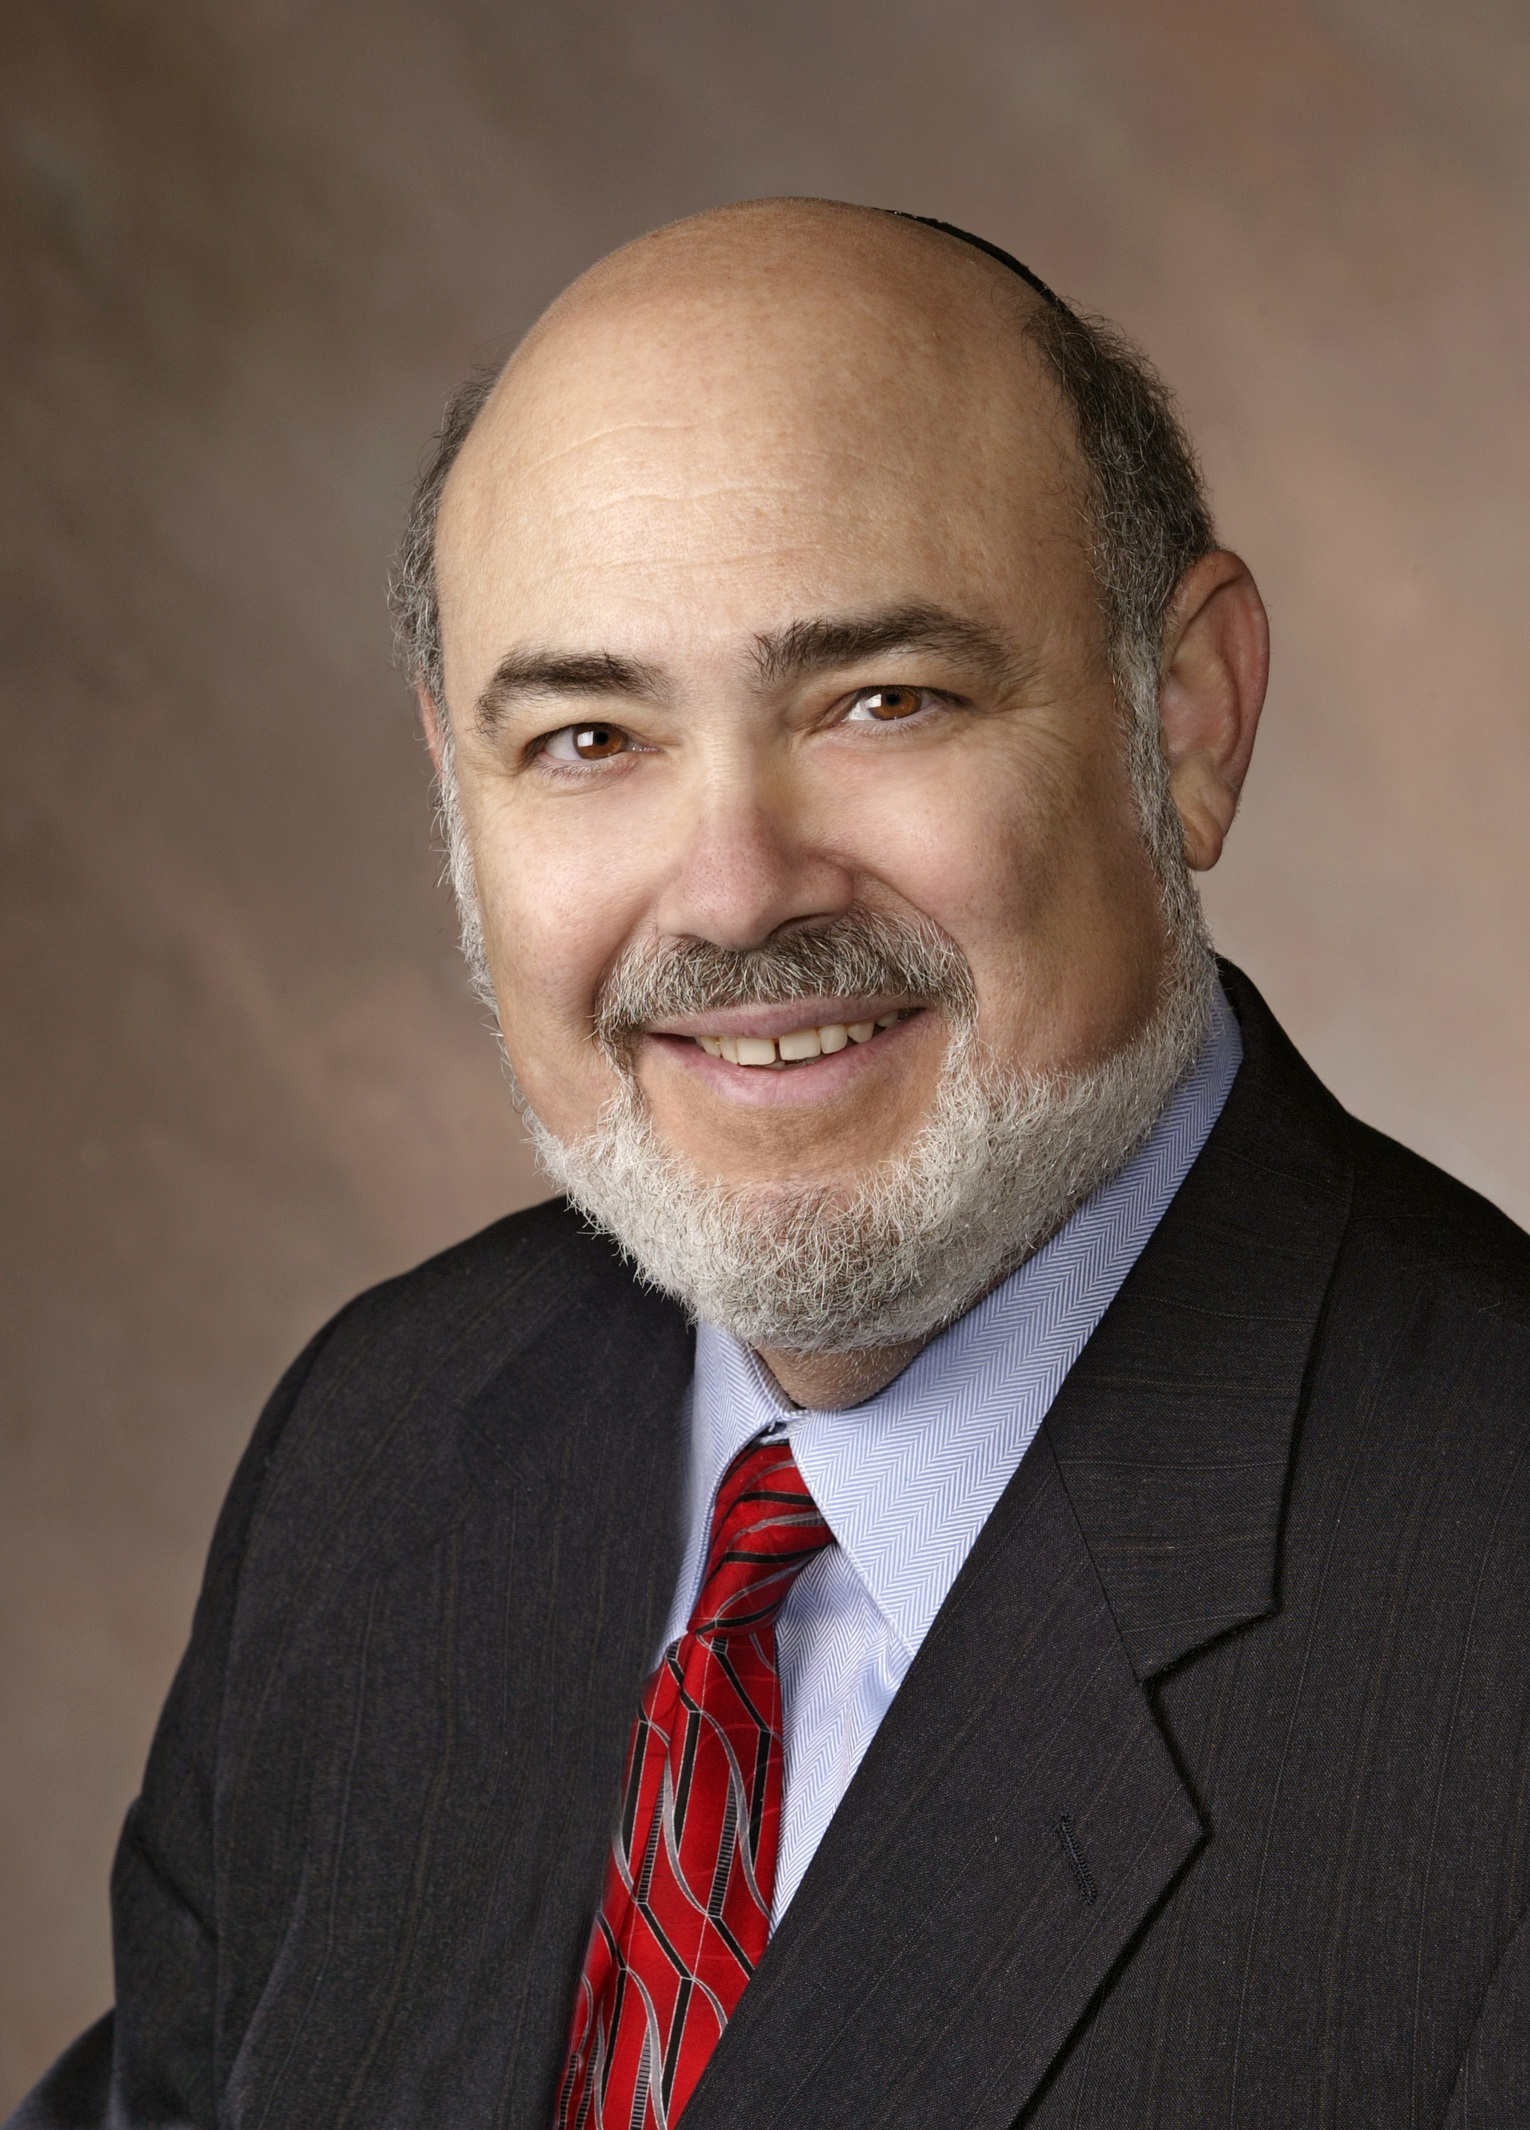 Howard M. Rosenblatt